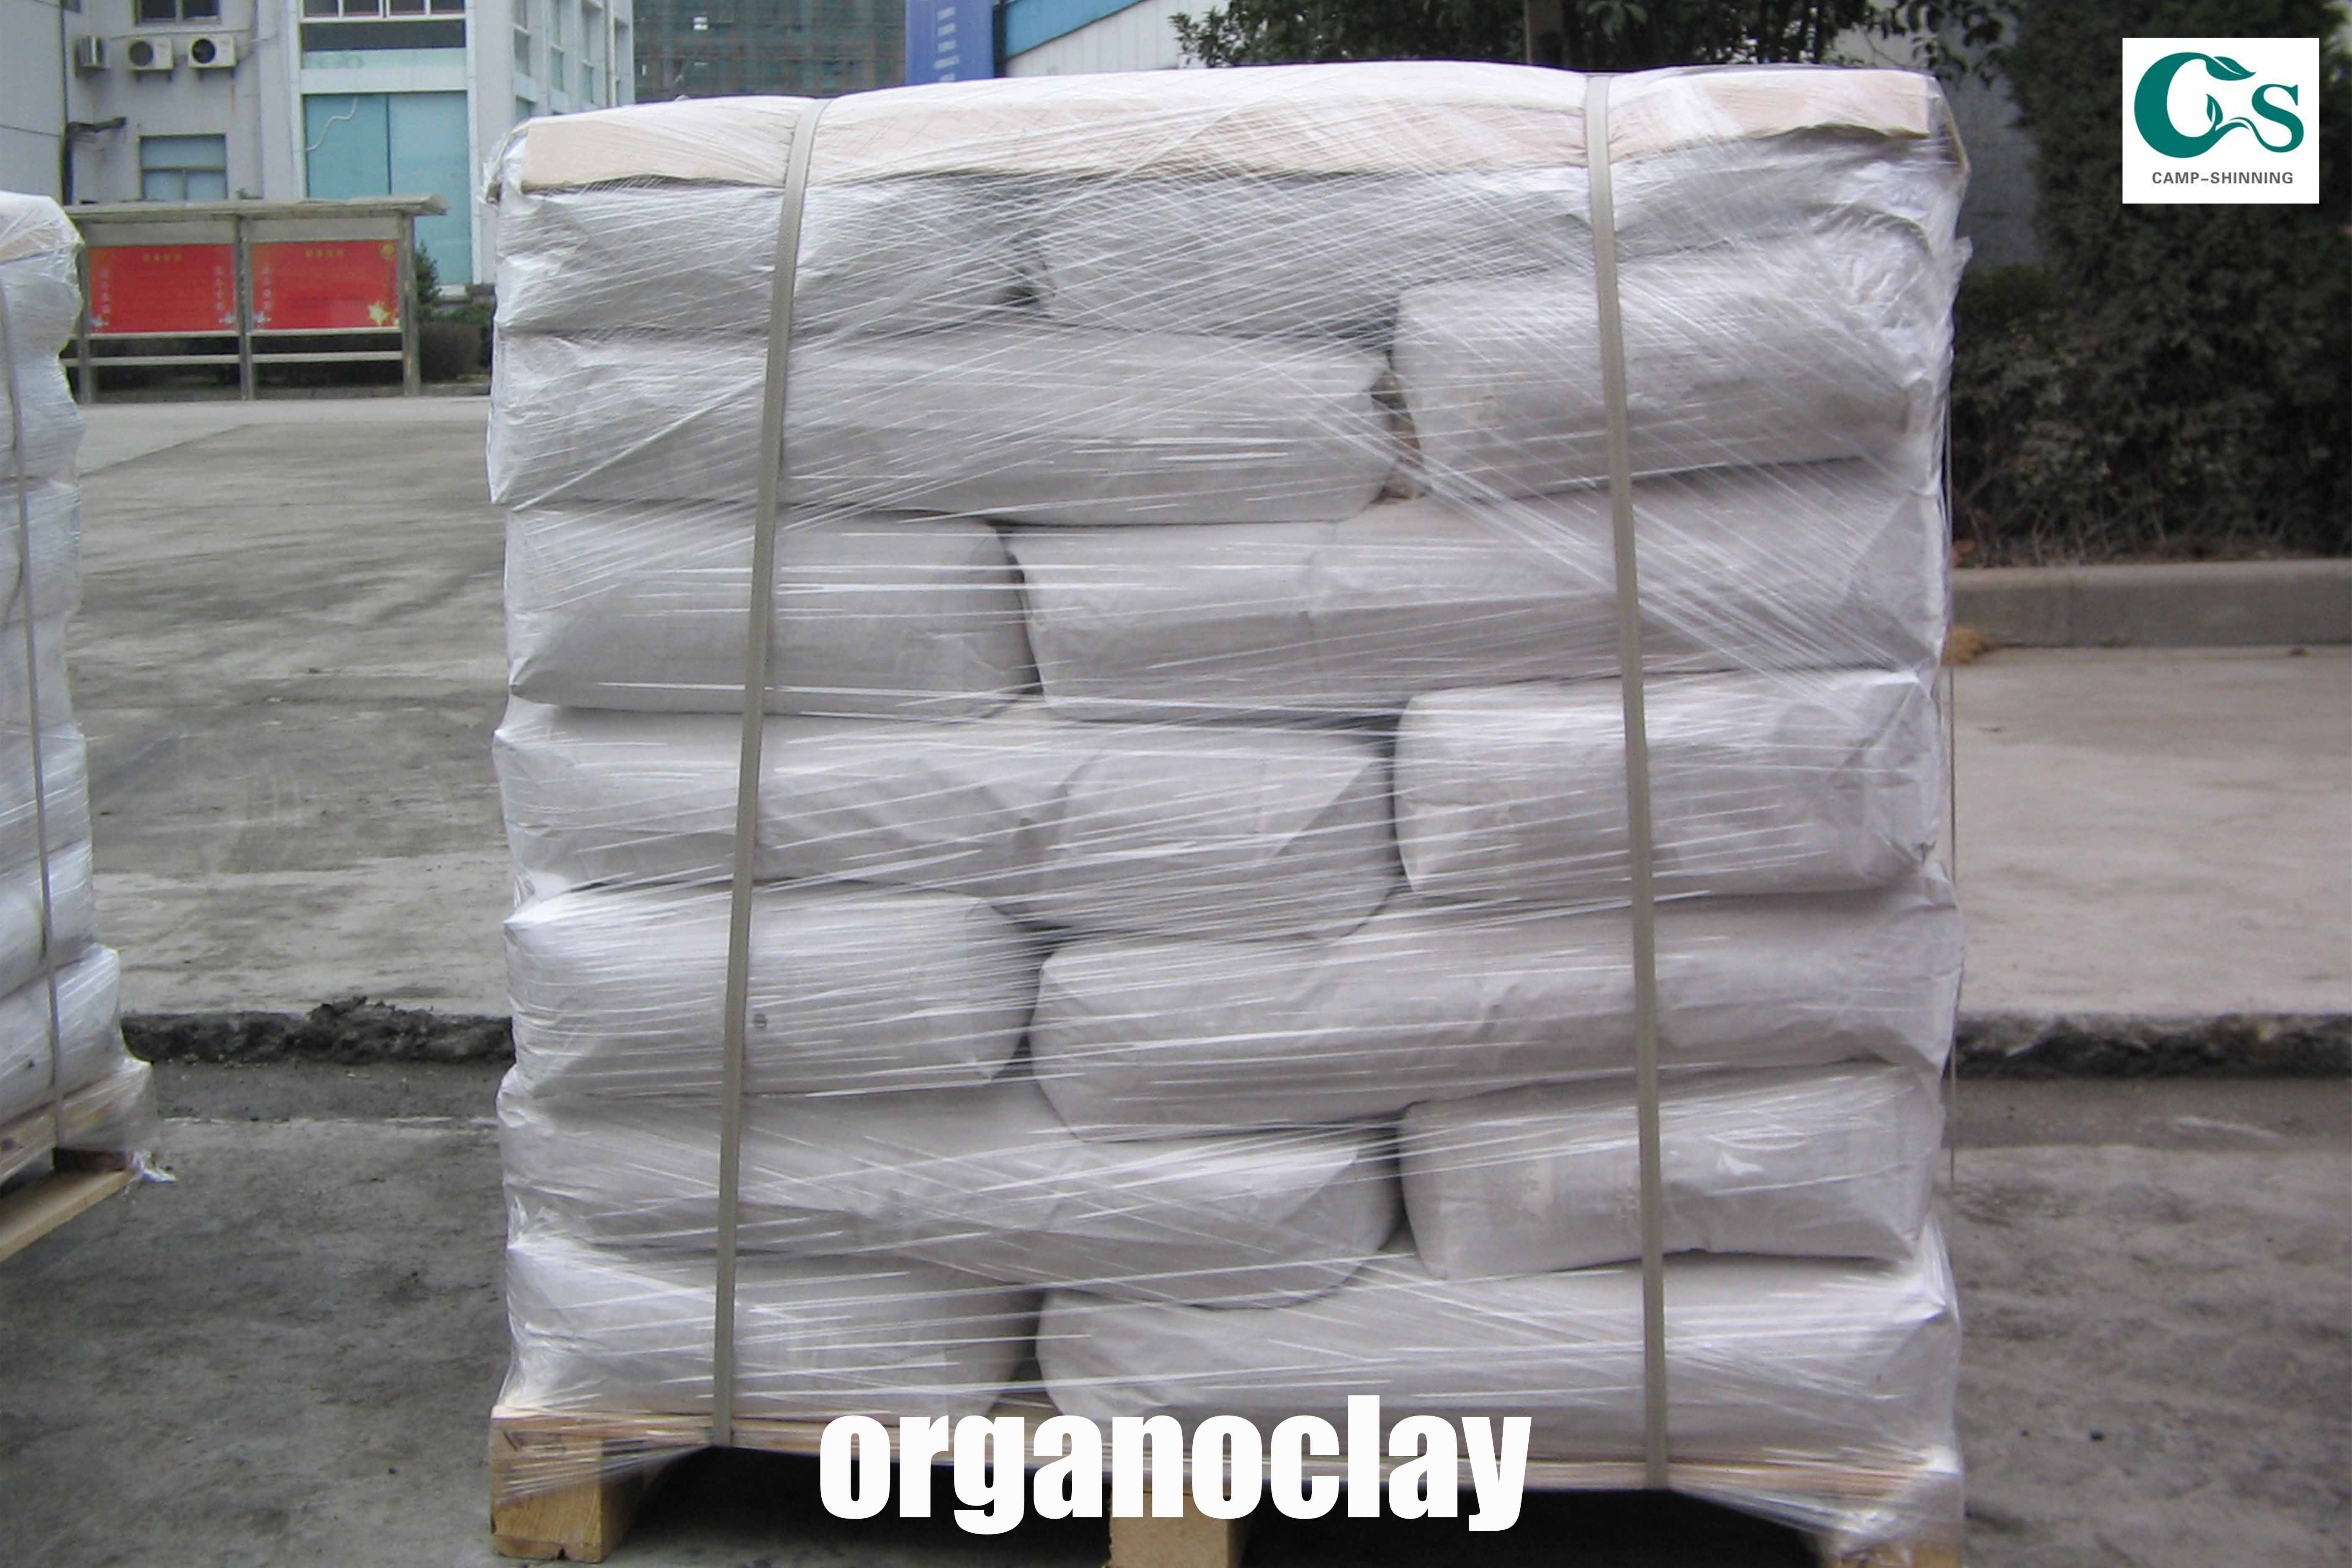 Organoclay CP-180B rheological additive for paint